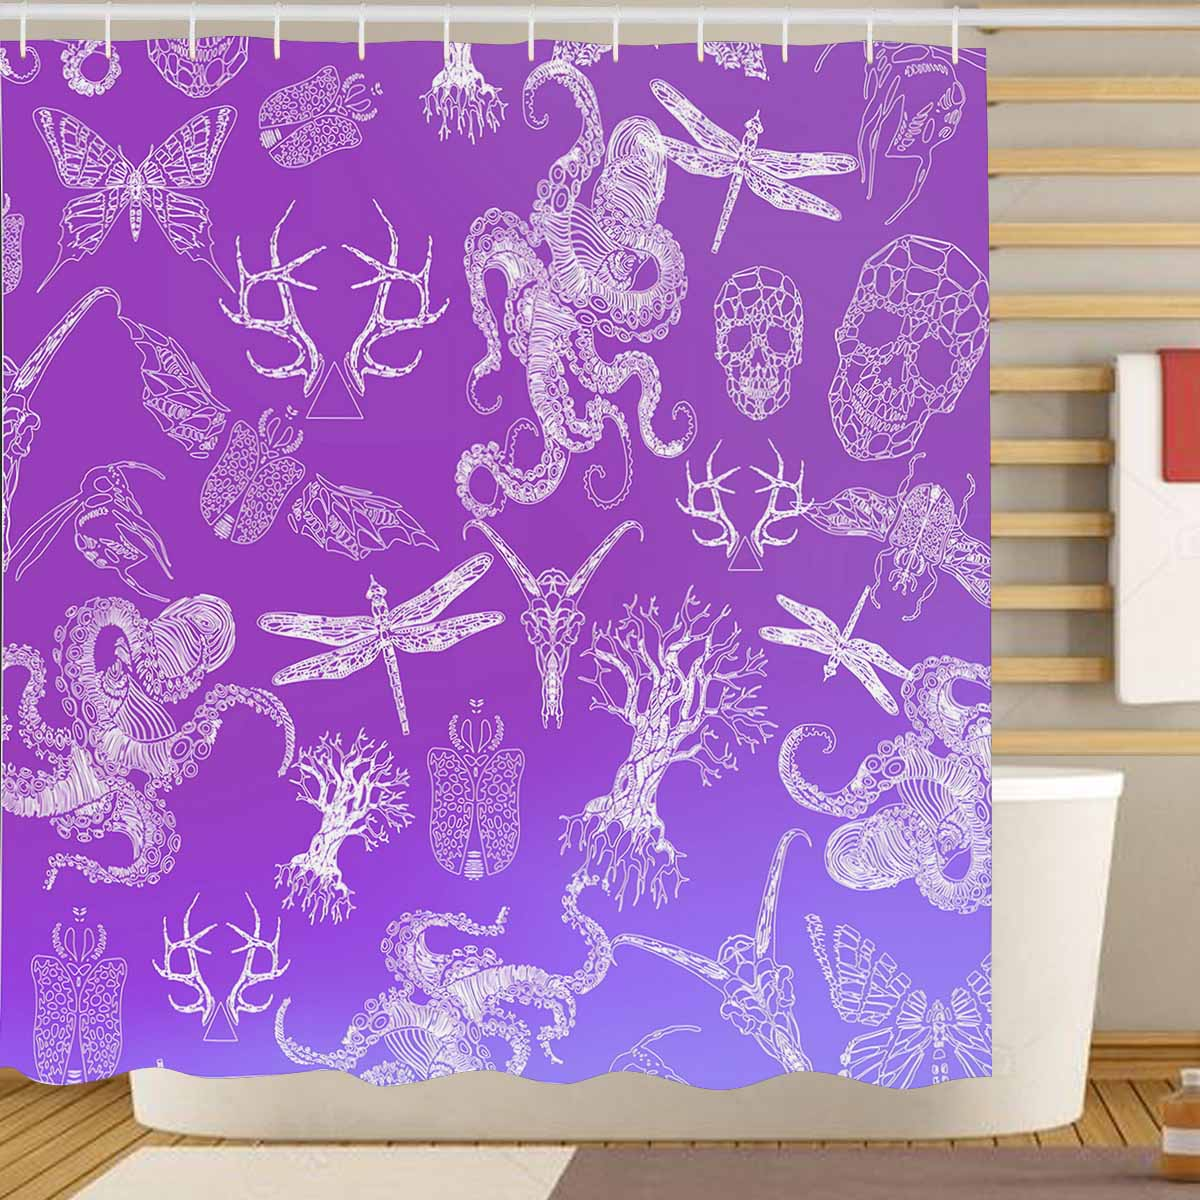 Skull Themed Shower Curtain Octopus Crystall Skull Dragonfly